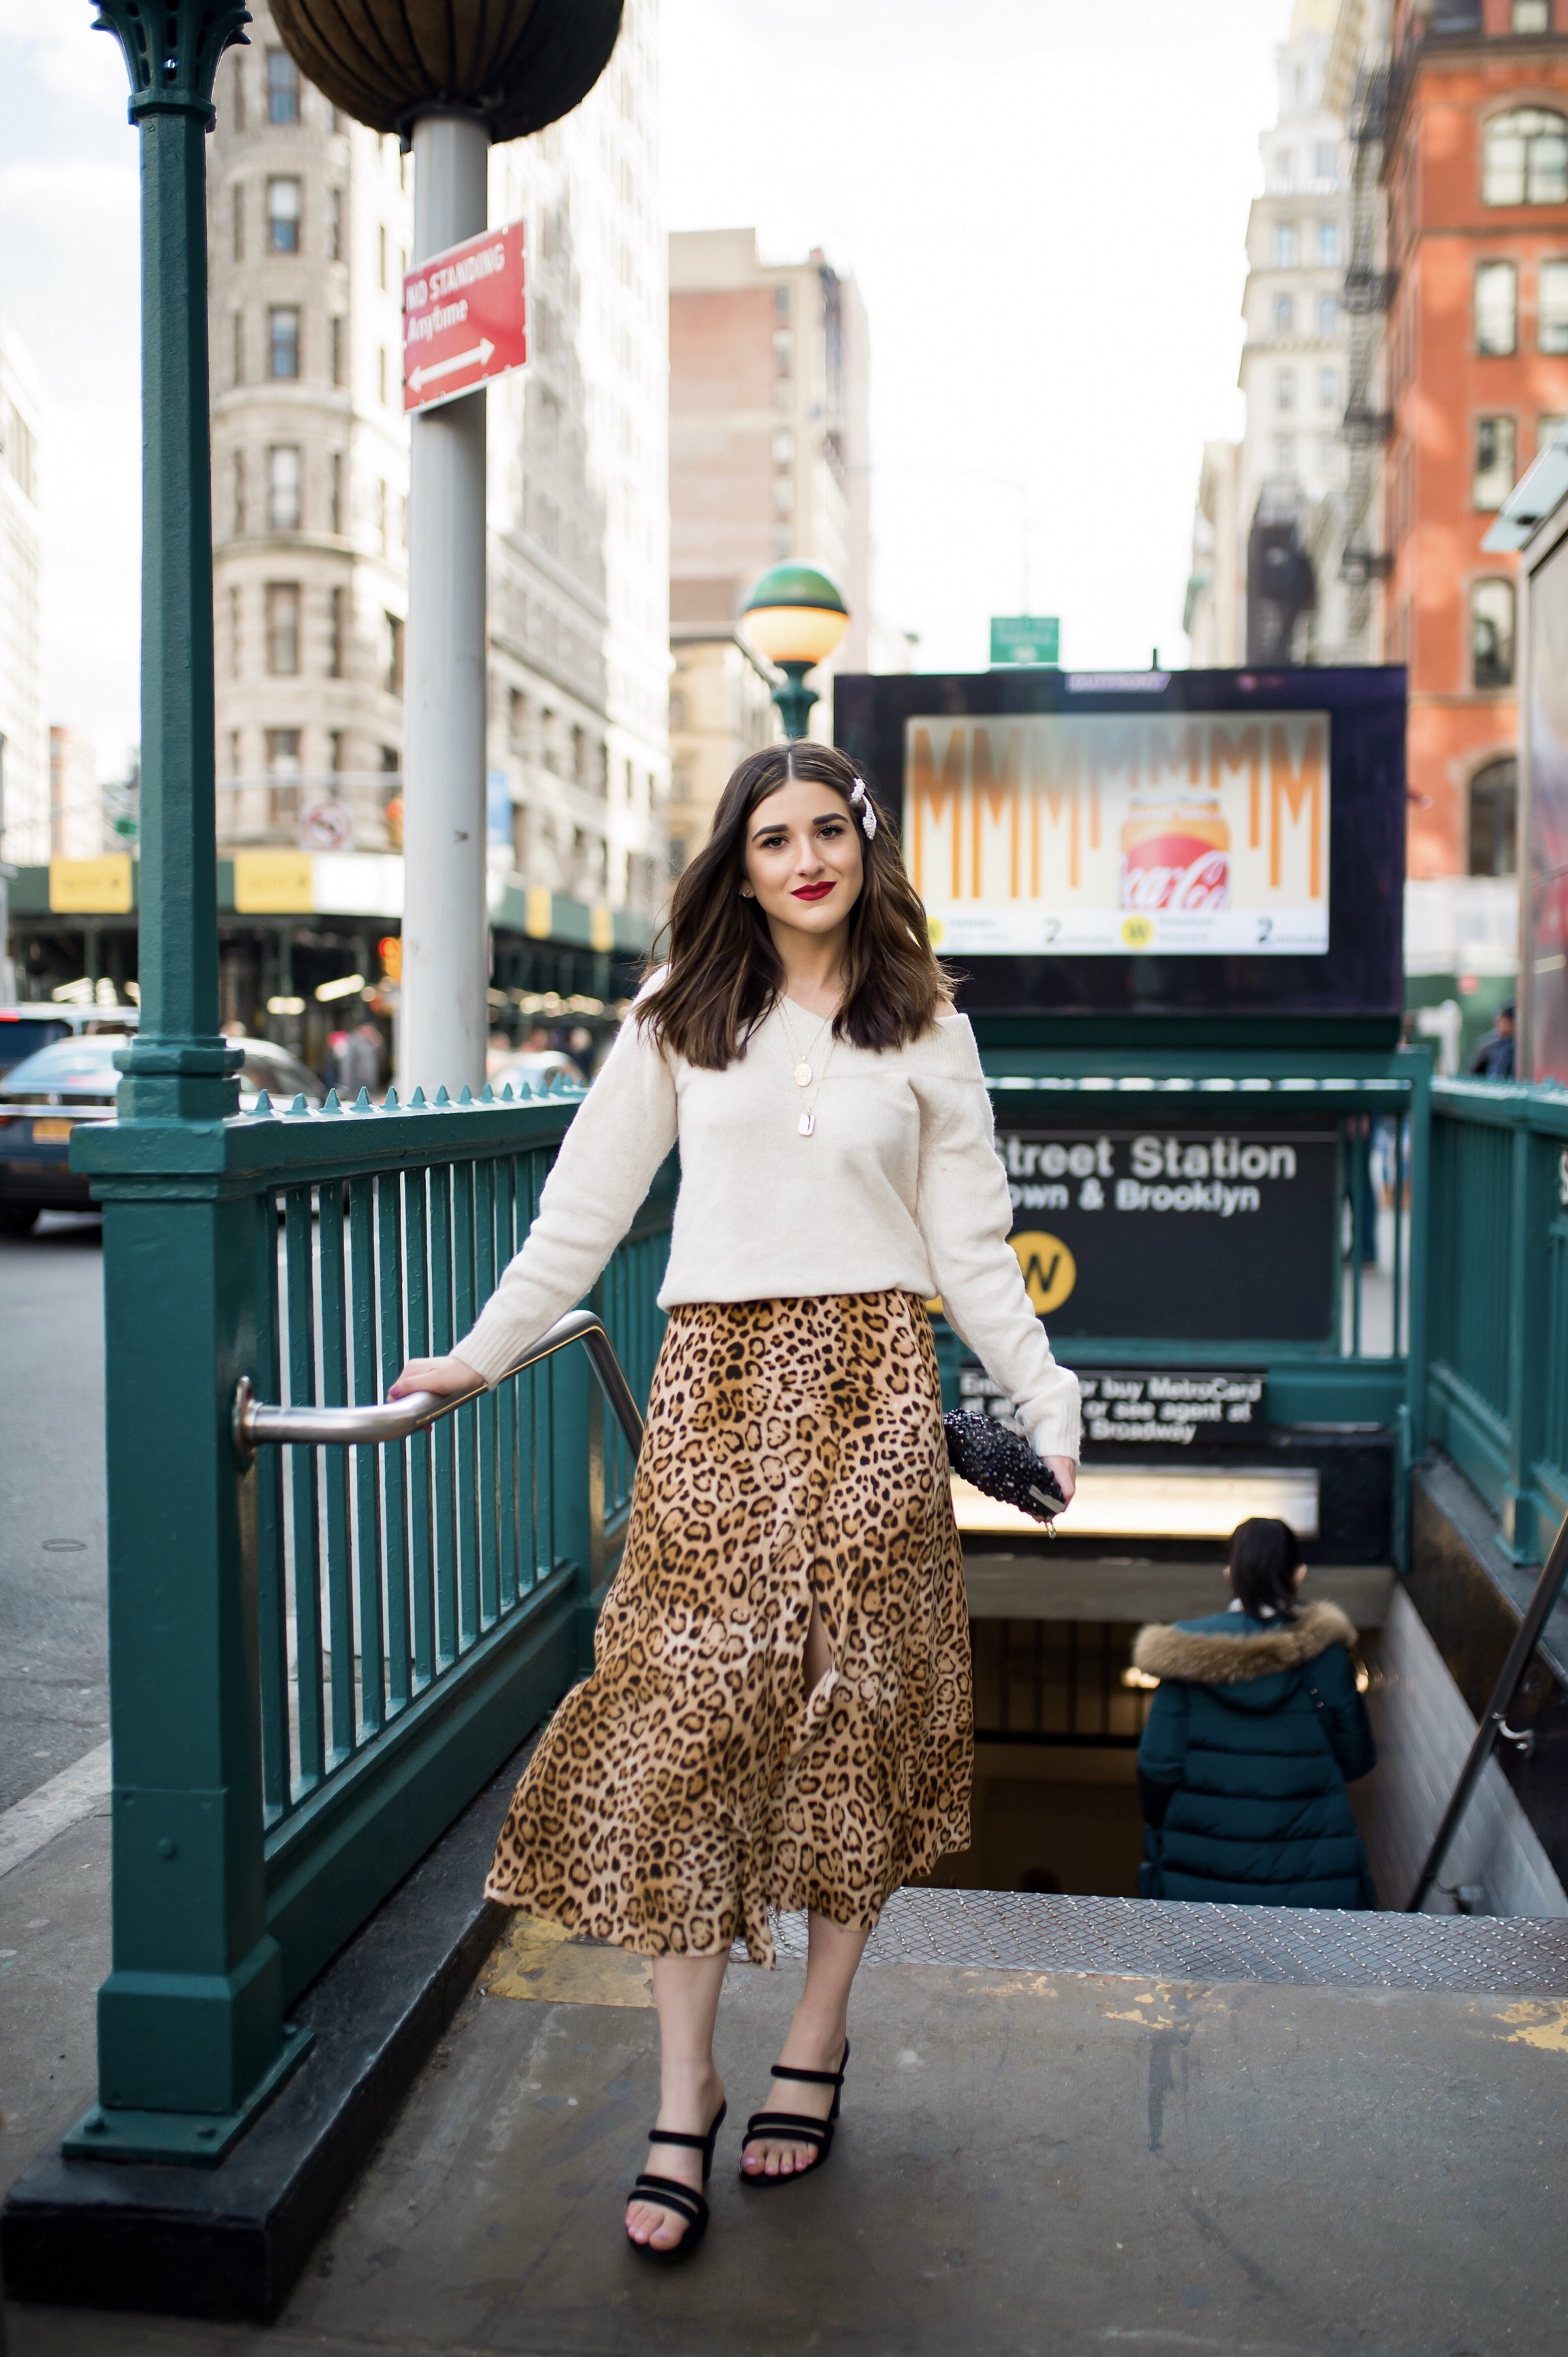 The Instagram Likes Debate Leopard Midi Skirt Beige Sweater Esther Santer Fashion Blog NYC Street Style Blogger Outfit OOTD Trendy Shopping Girl What Wear H&M Zara Pearl Barrettes Hair Clips Accessories Mules Sandals Beaded Clutch Spring Necklaces Bag.jpg